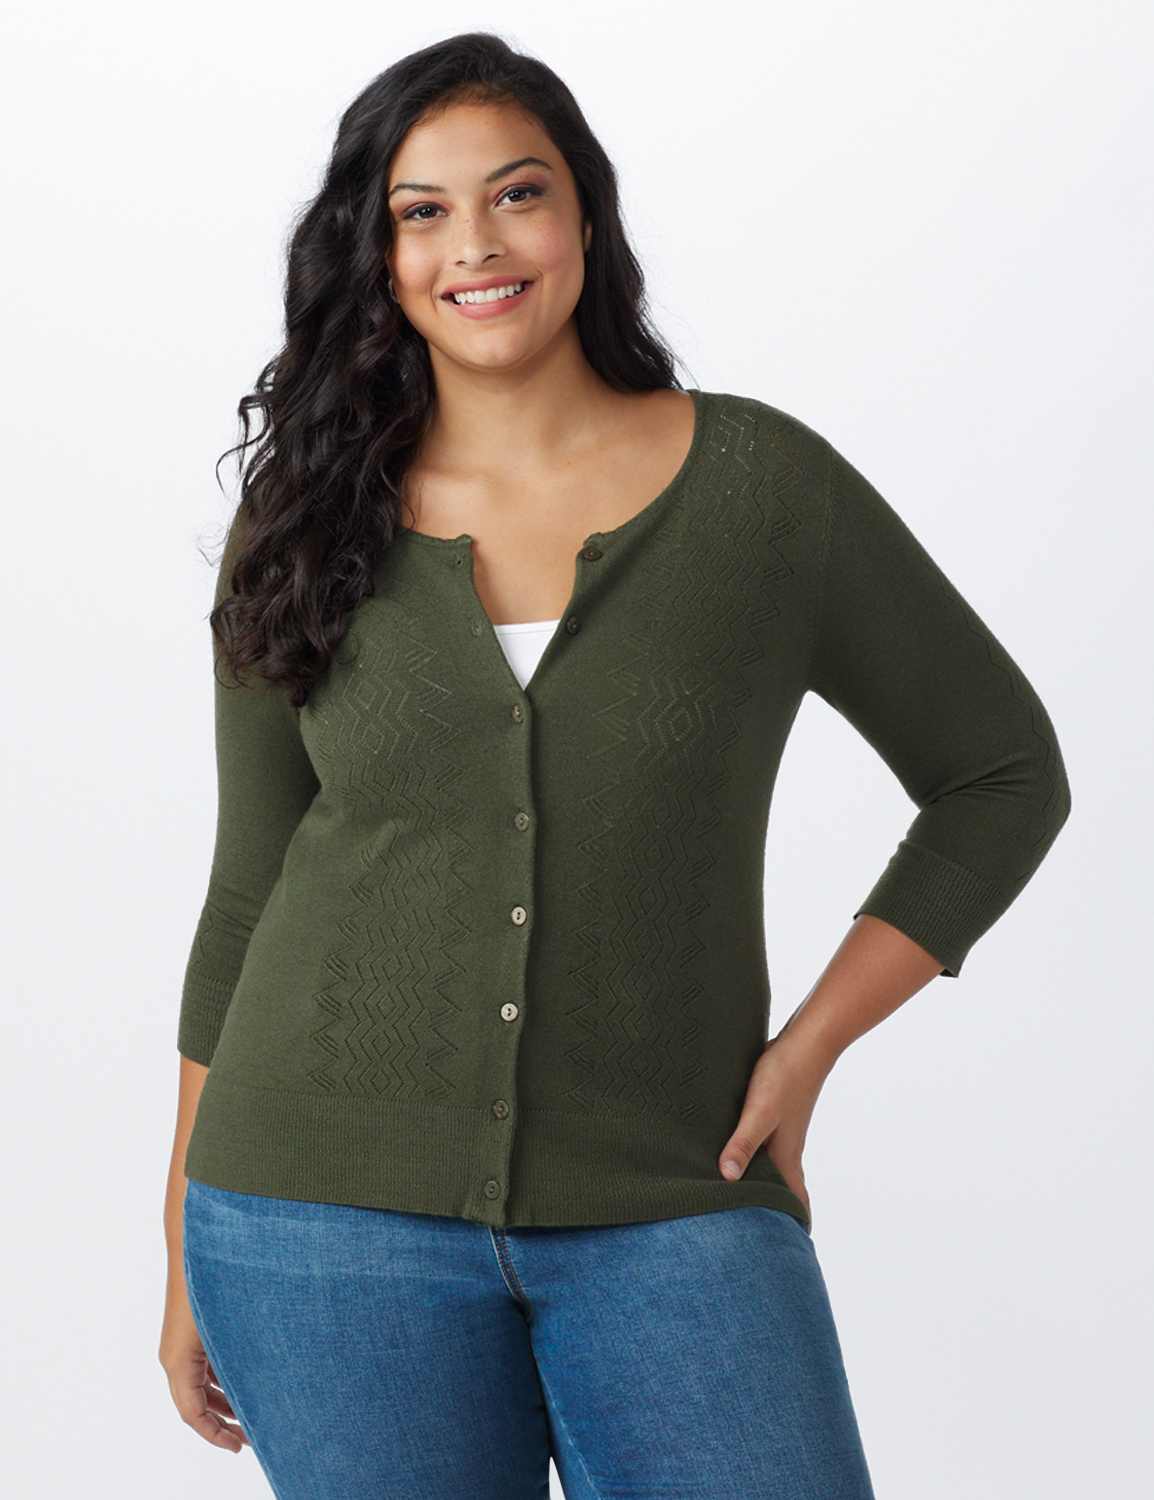 Roz & Ali Pointelle Button-Up Cardigan - Plus -Olive - Front